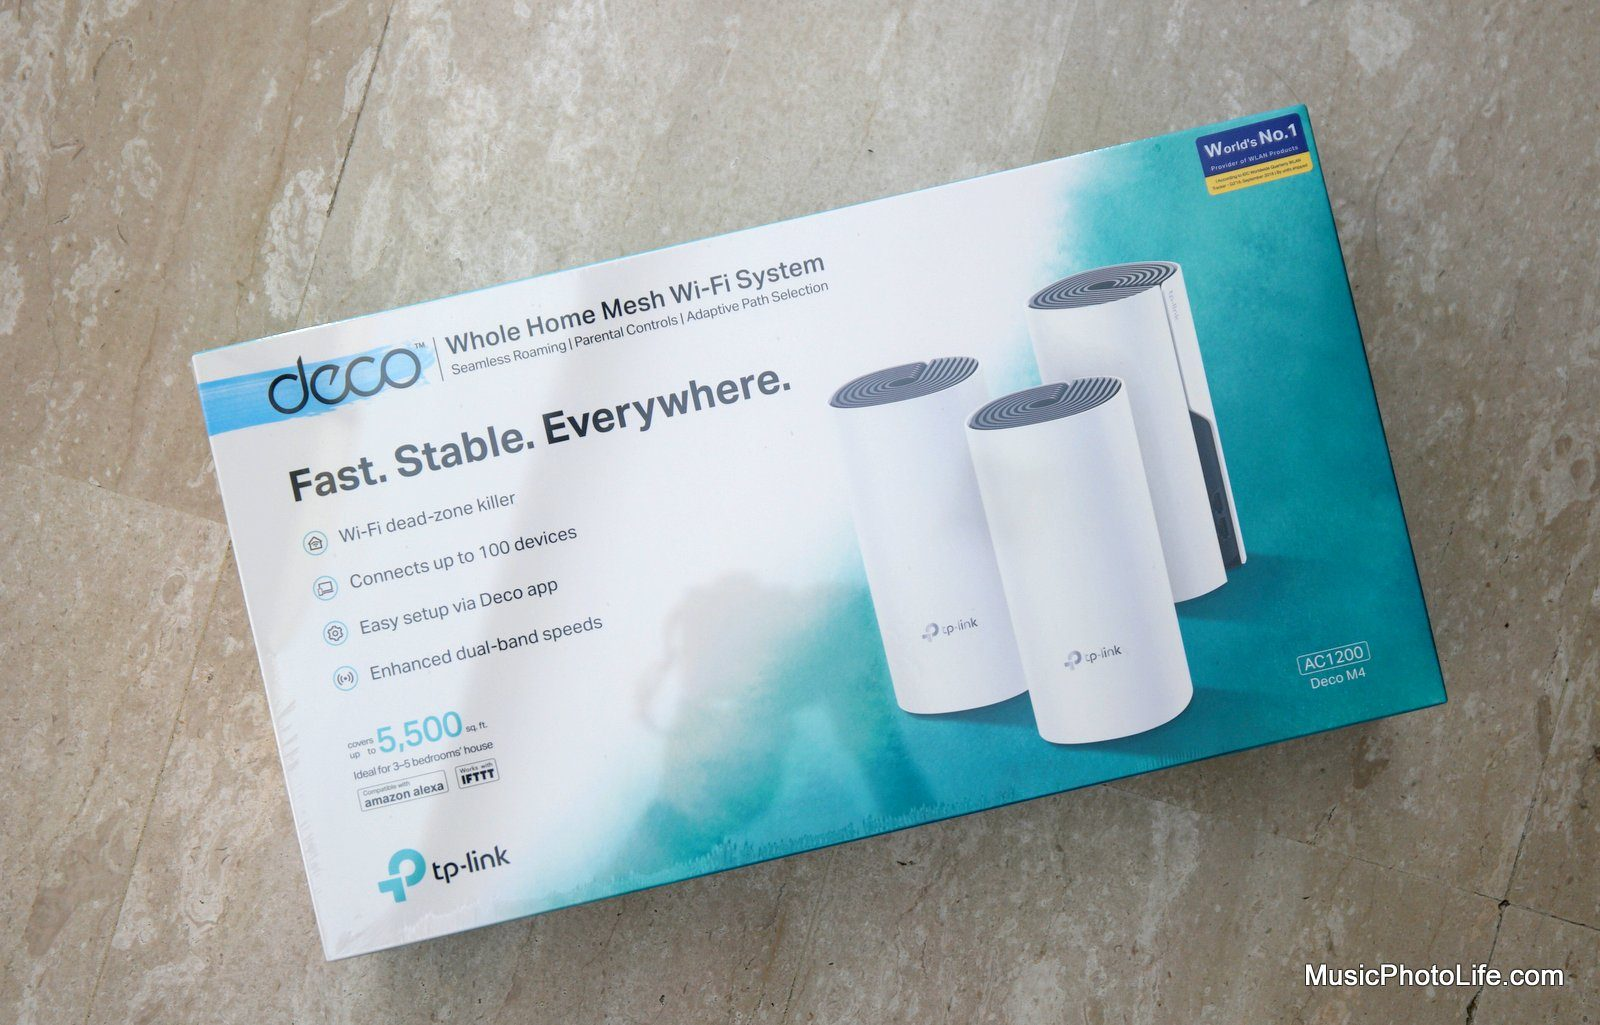 TP-Link Deco M4 review by Chester Tan musicphotolife.com